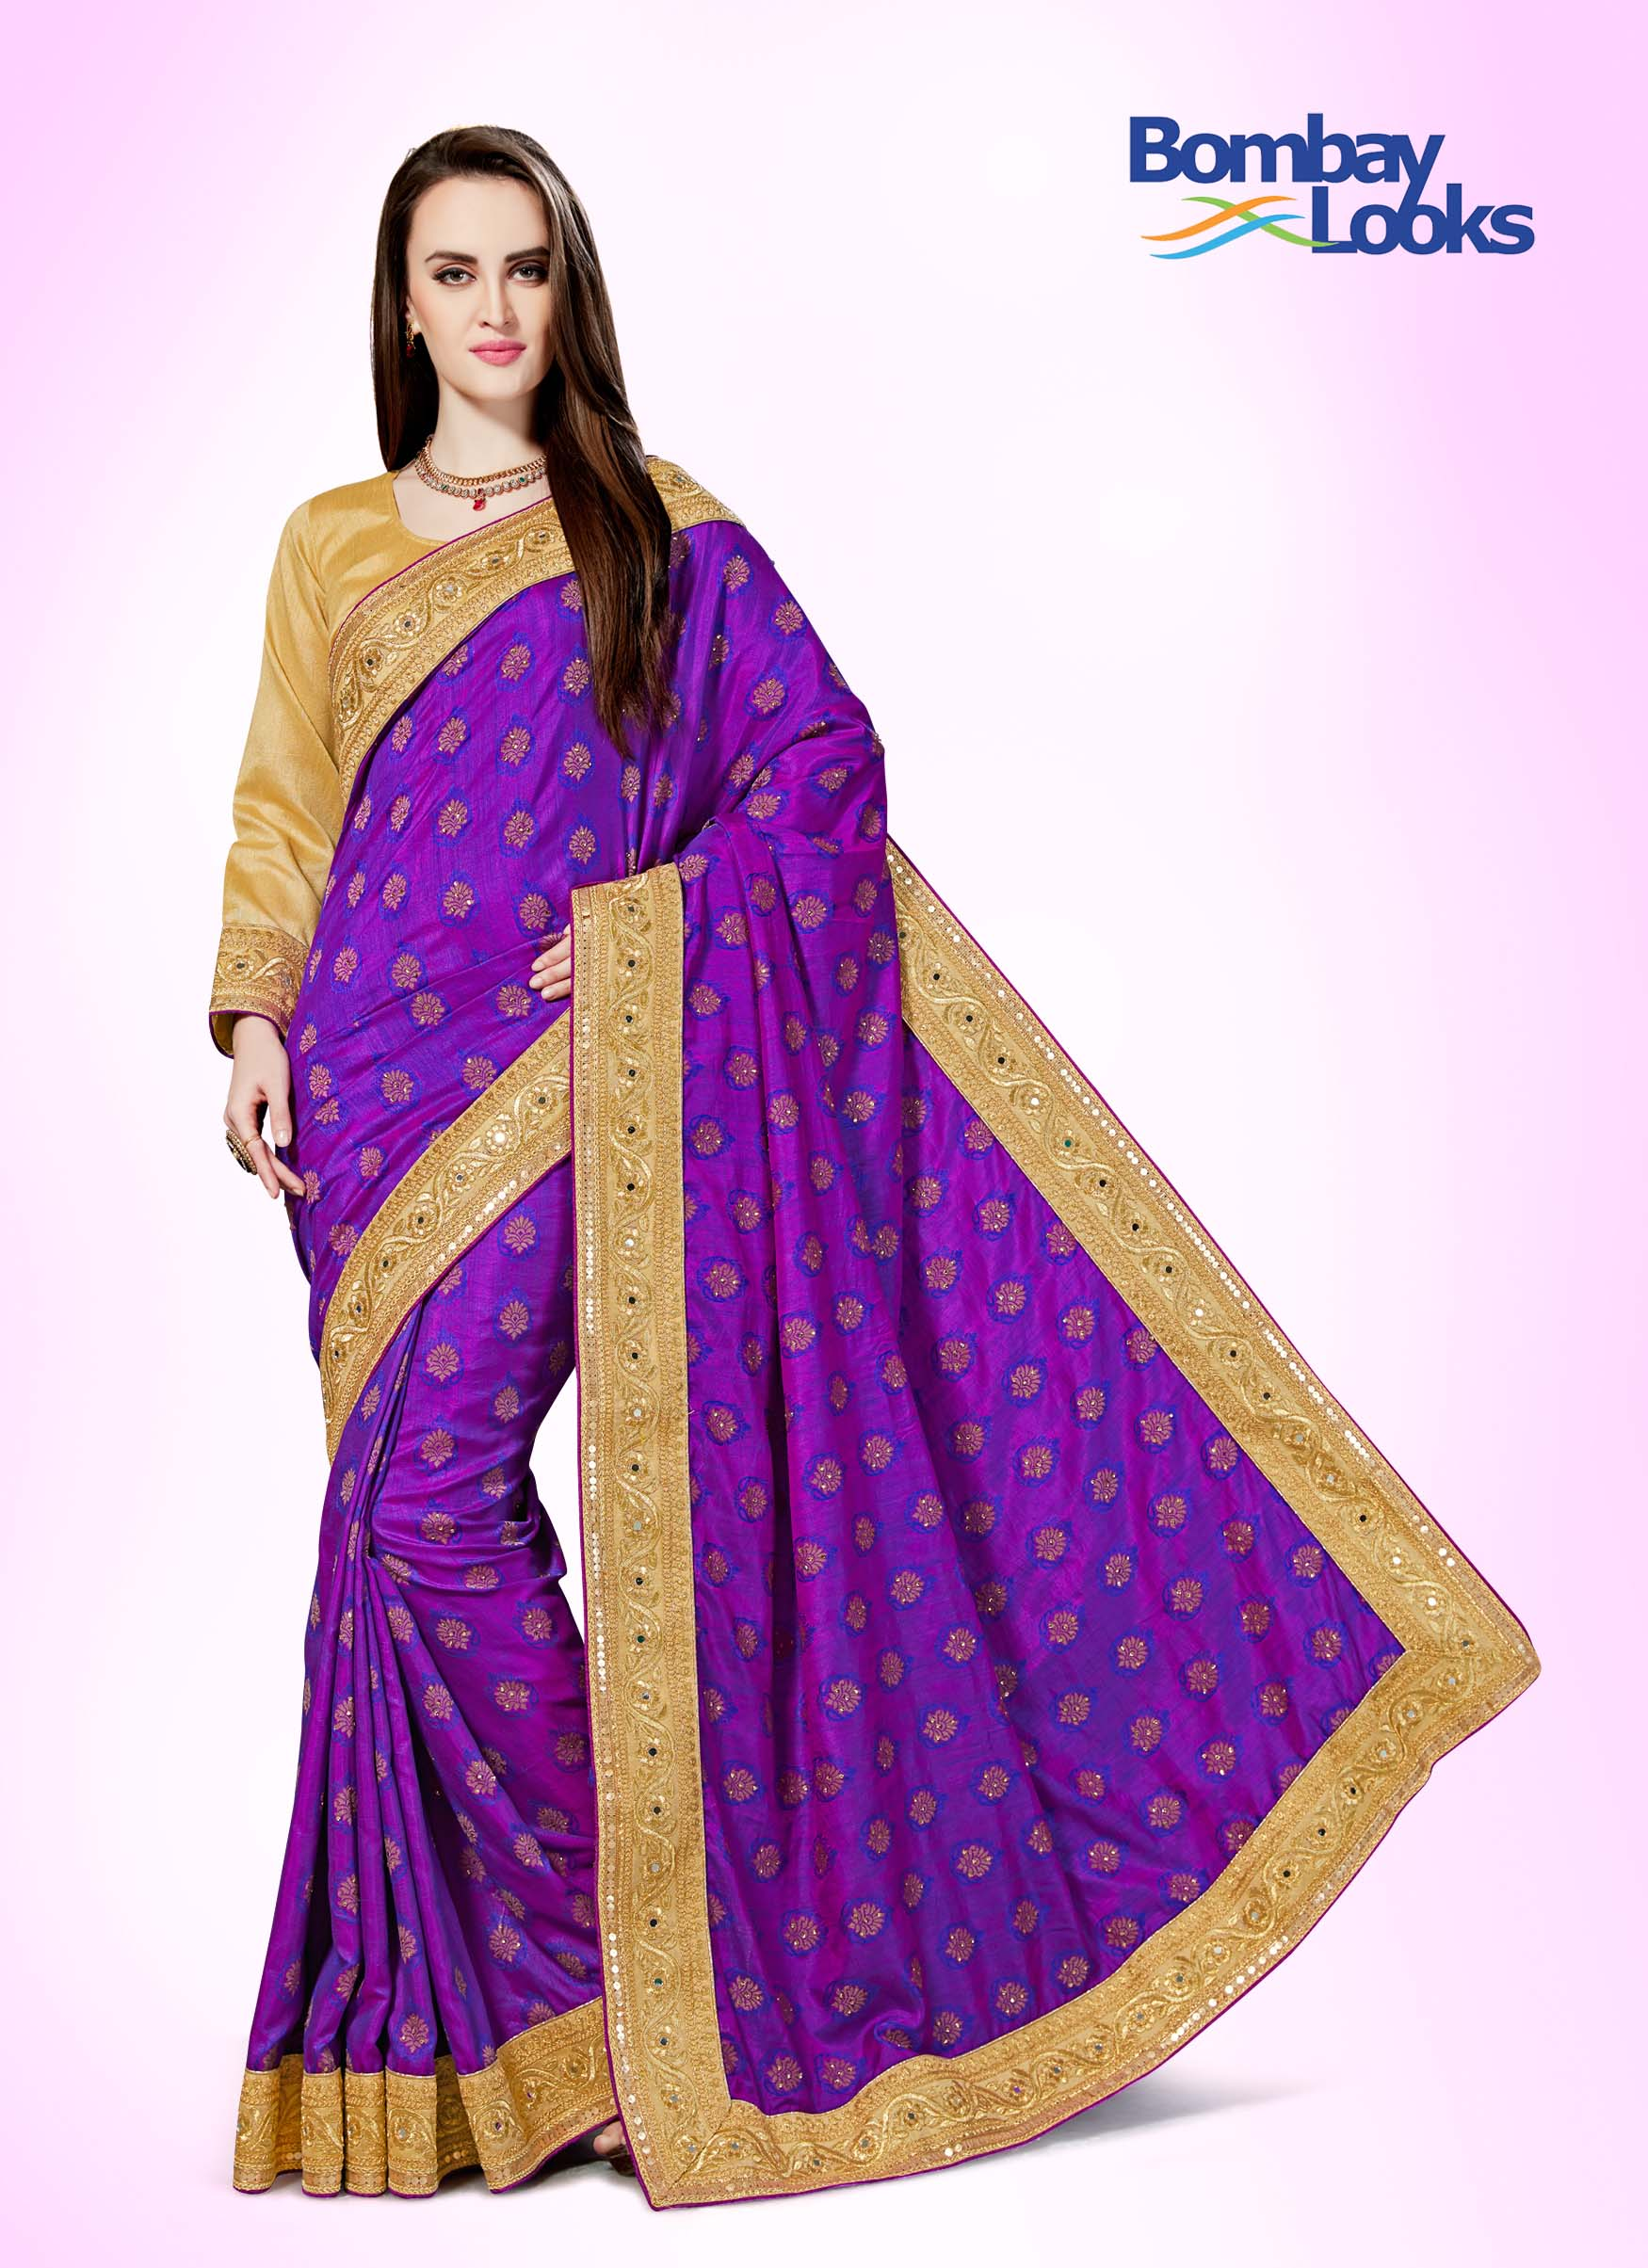 Purple banarasi saree with rich gold border and chikoo gold blouse